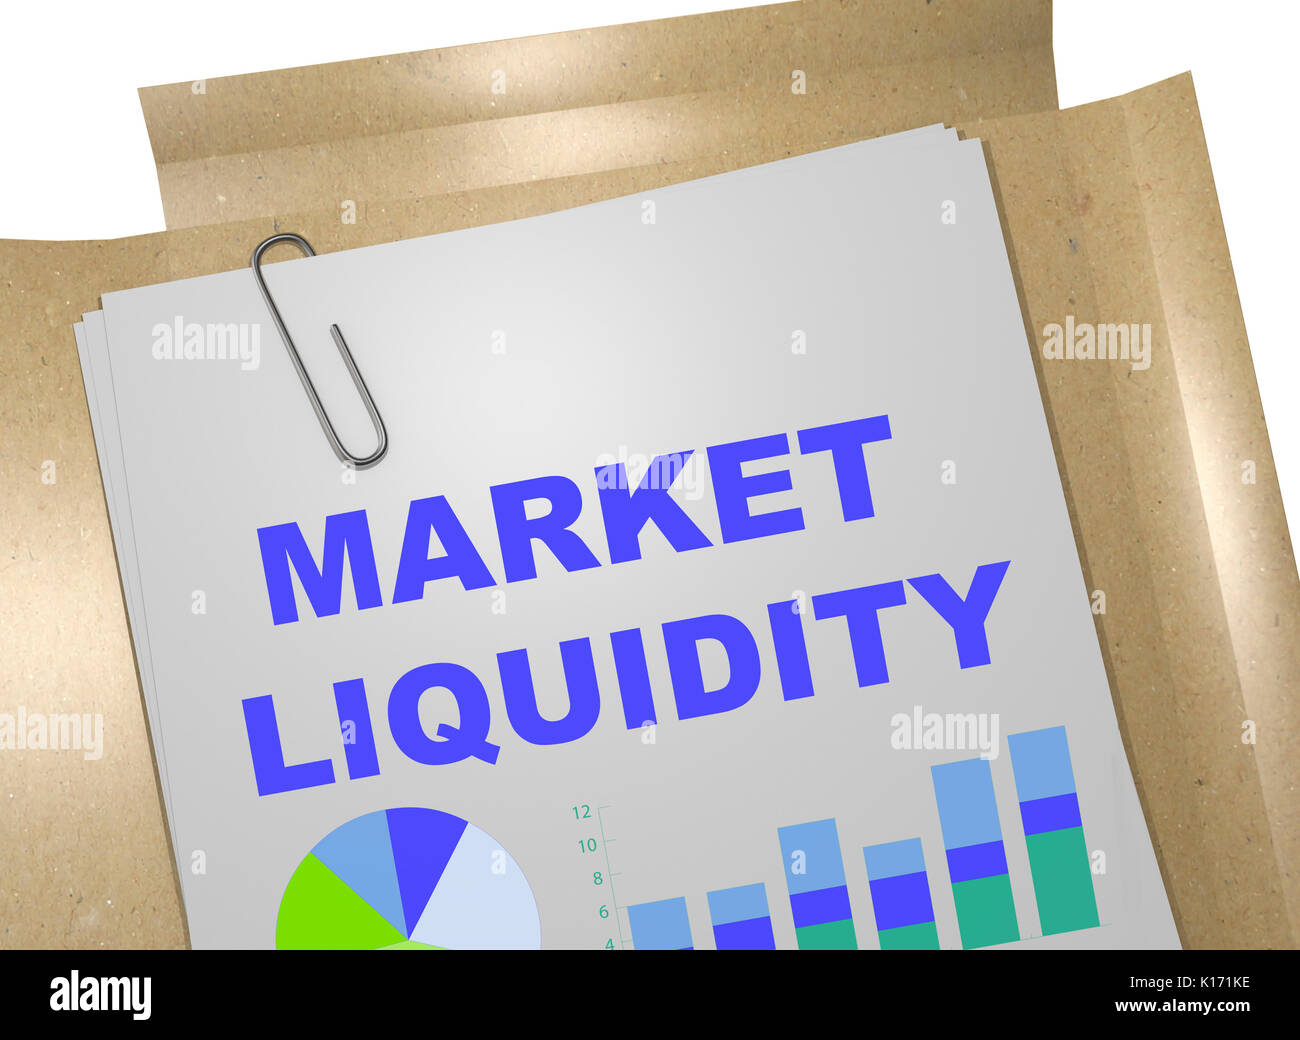 3D illustration of 'MARKET LIQUIDITY' title on business document - Stock Image